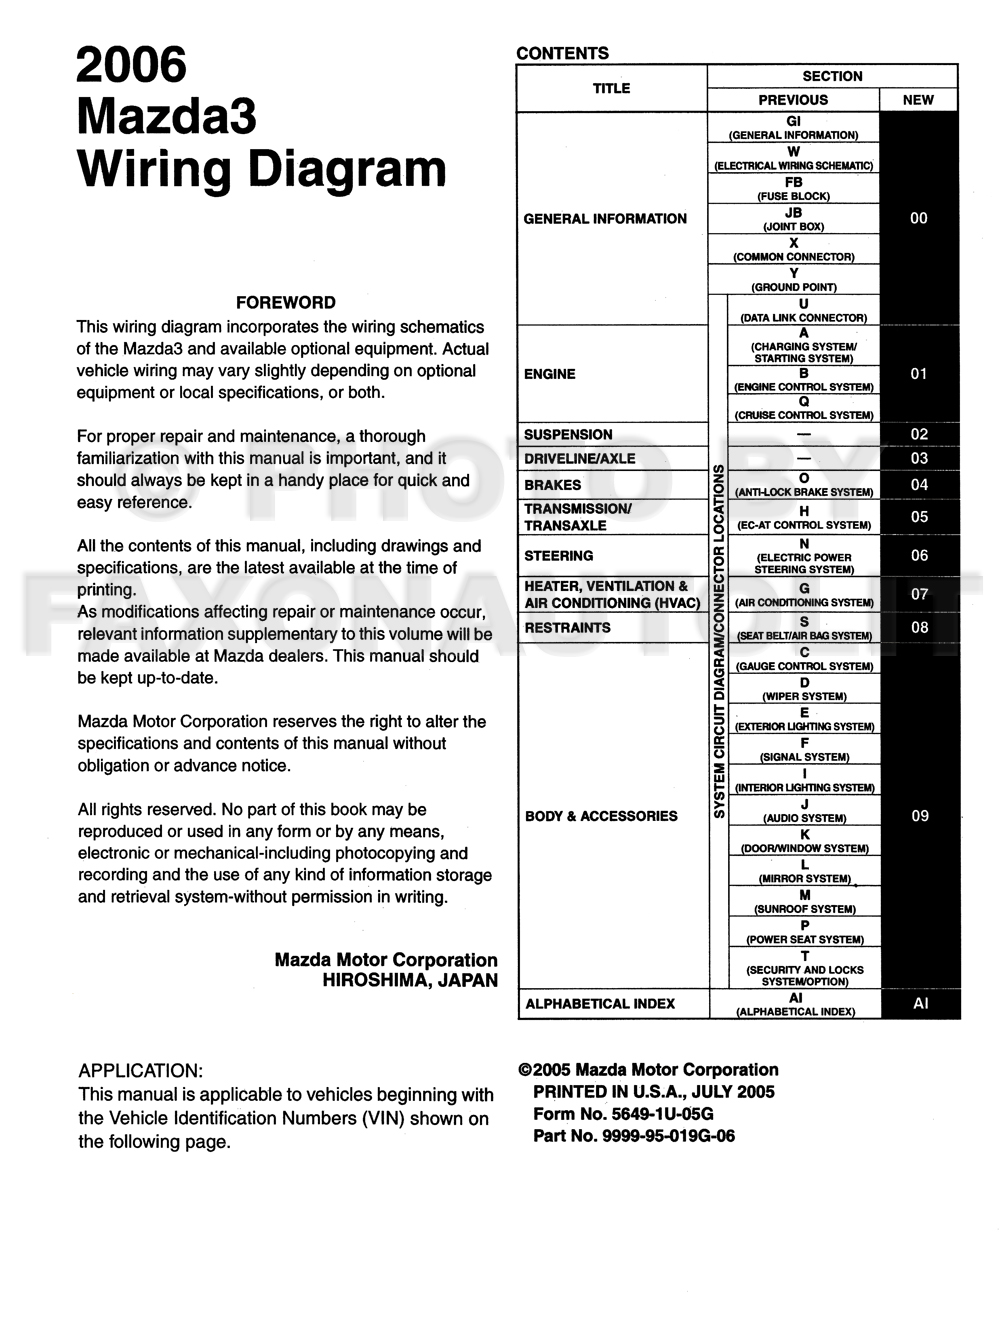 2007 Mazda 3 Wiring Diagram Third Level 2006 Hyundai Entourage Engine Schematic Stereo Library